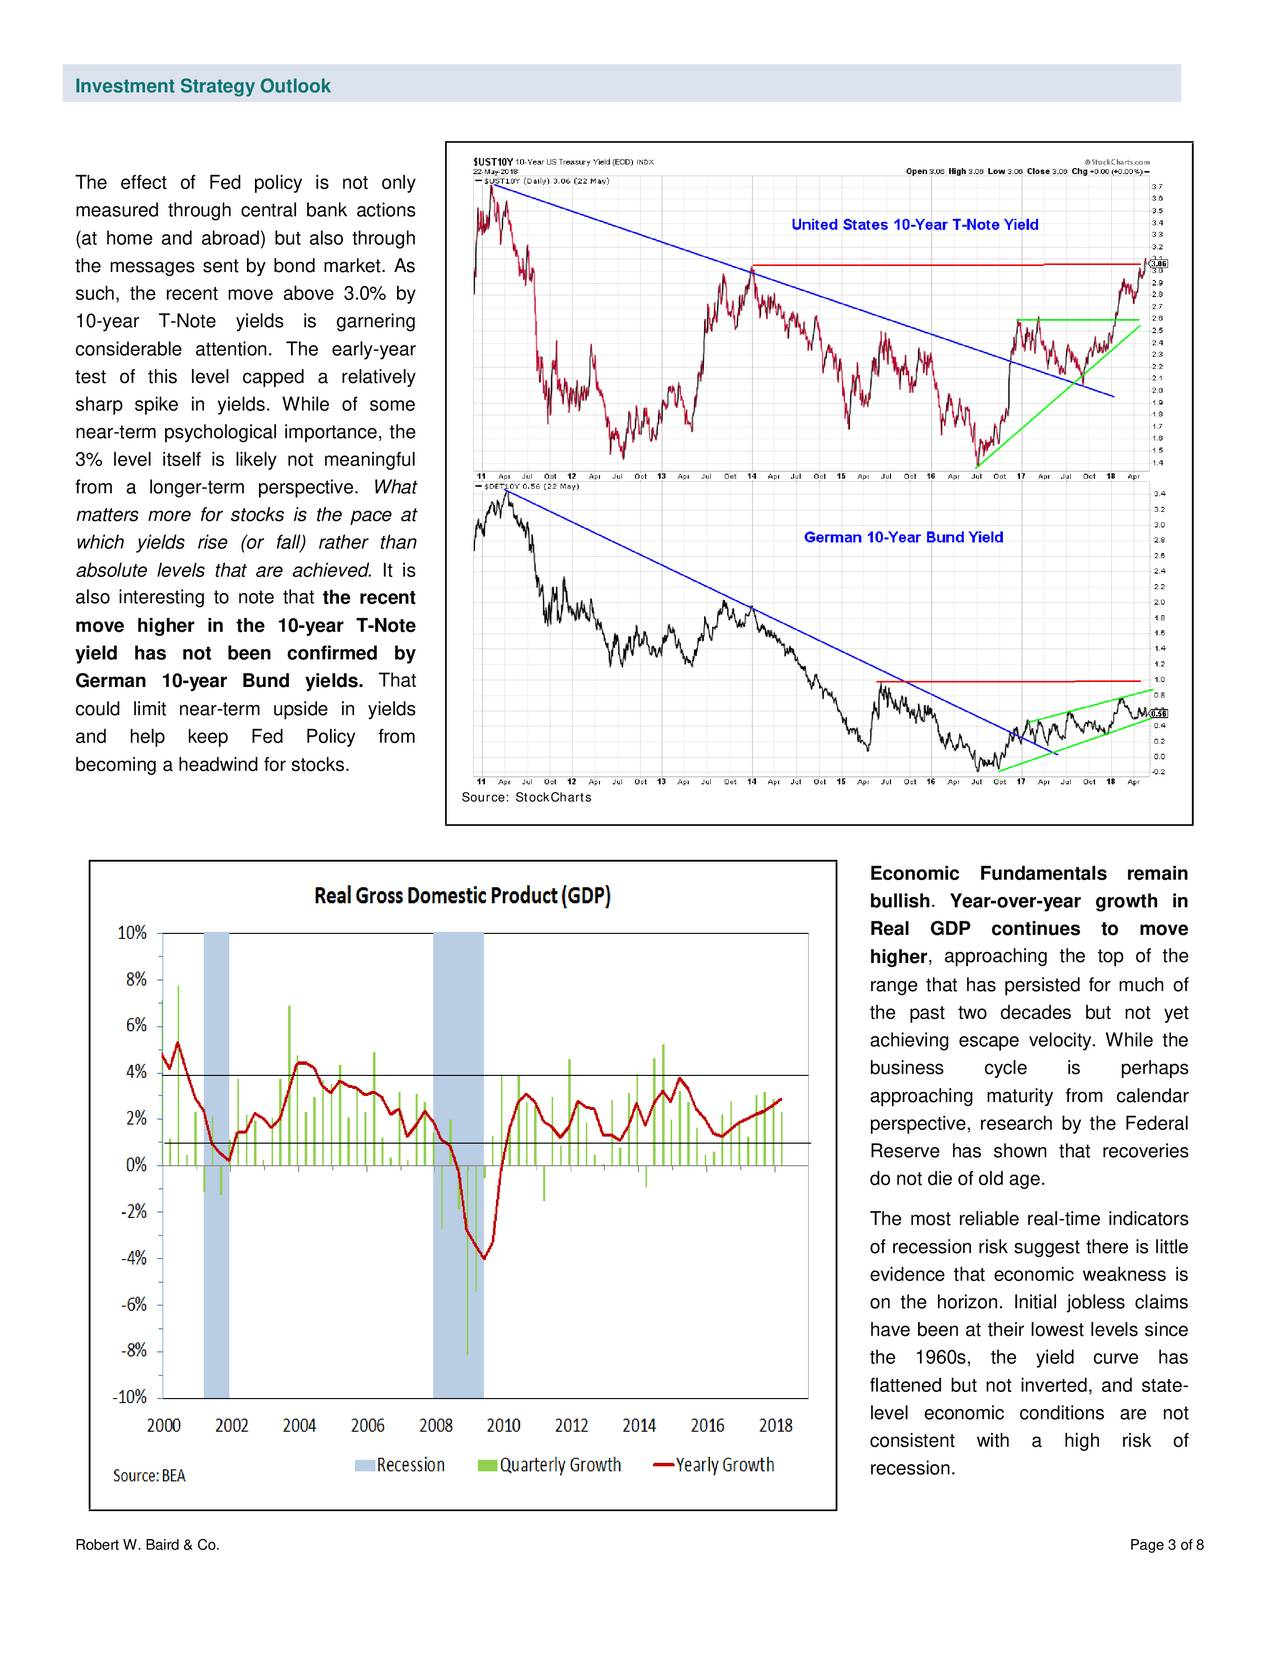 The effect of Fed policy is not only measured through central bank actions (at home and abroad) but also through the messages sent by bond market. As such, the recent move above 3.0% by 10-year T -Note yields is garnering considerable attention. The early -year test of this level capped a relatively sharp spike in yields. While of some near-term psychological importance, the 3% level itself is likely not meaningful from a longer -term pe rspective. What matters more for stocks is the pace at which yields rise (or fall) rather than absolute levels that are achieved. It is also interesting to note that the recent move higher in the 10 -year T -Note yield has not been confirmed by German 10- year Bund yields. That could limit near -term upside in yields and help keep Fed Policy from becoming a headwind for stocks. Source: StockCharts Economic Fundamentals remain bullish . Year-over-year growth in Real GDP continues to move higher , approaching the top of the range that has persisted for much of the past two decades but not yet achieving escape velocity. While the business cycle is perhaps approaching maturity from calendar perspective, research by the Federal Reserve has shown that recoveries do not die of old age. The most reliable real -time indicators of recession risk suggest there is little evidence that economic weakness is on the horizon. Initial jobless claims have been at their lowest levels since the 1960 s, the yield curve has flattened but not inverted, and state- level economic conditions are not consistent with a high risk of recession. Robert W. Baird & Co. Page 3 of 8